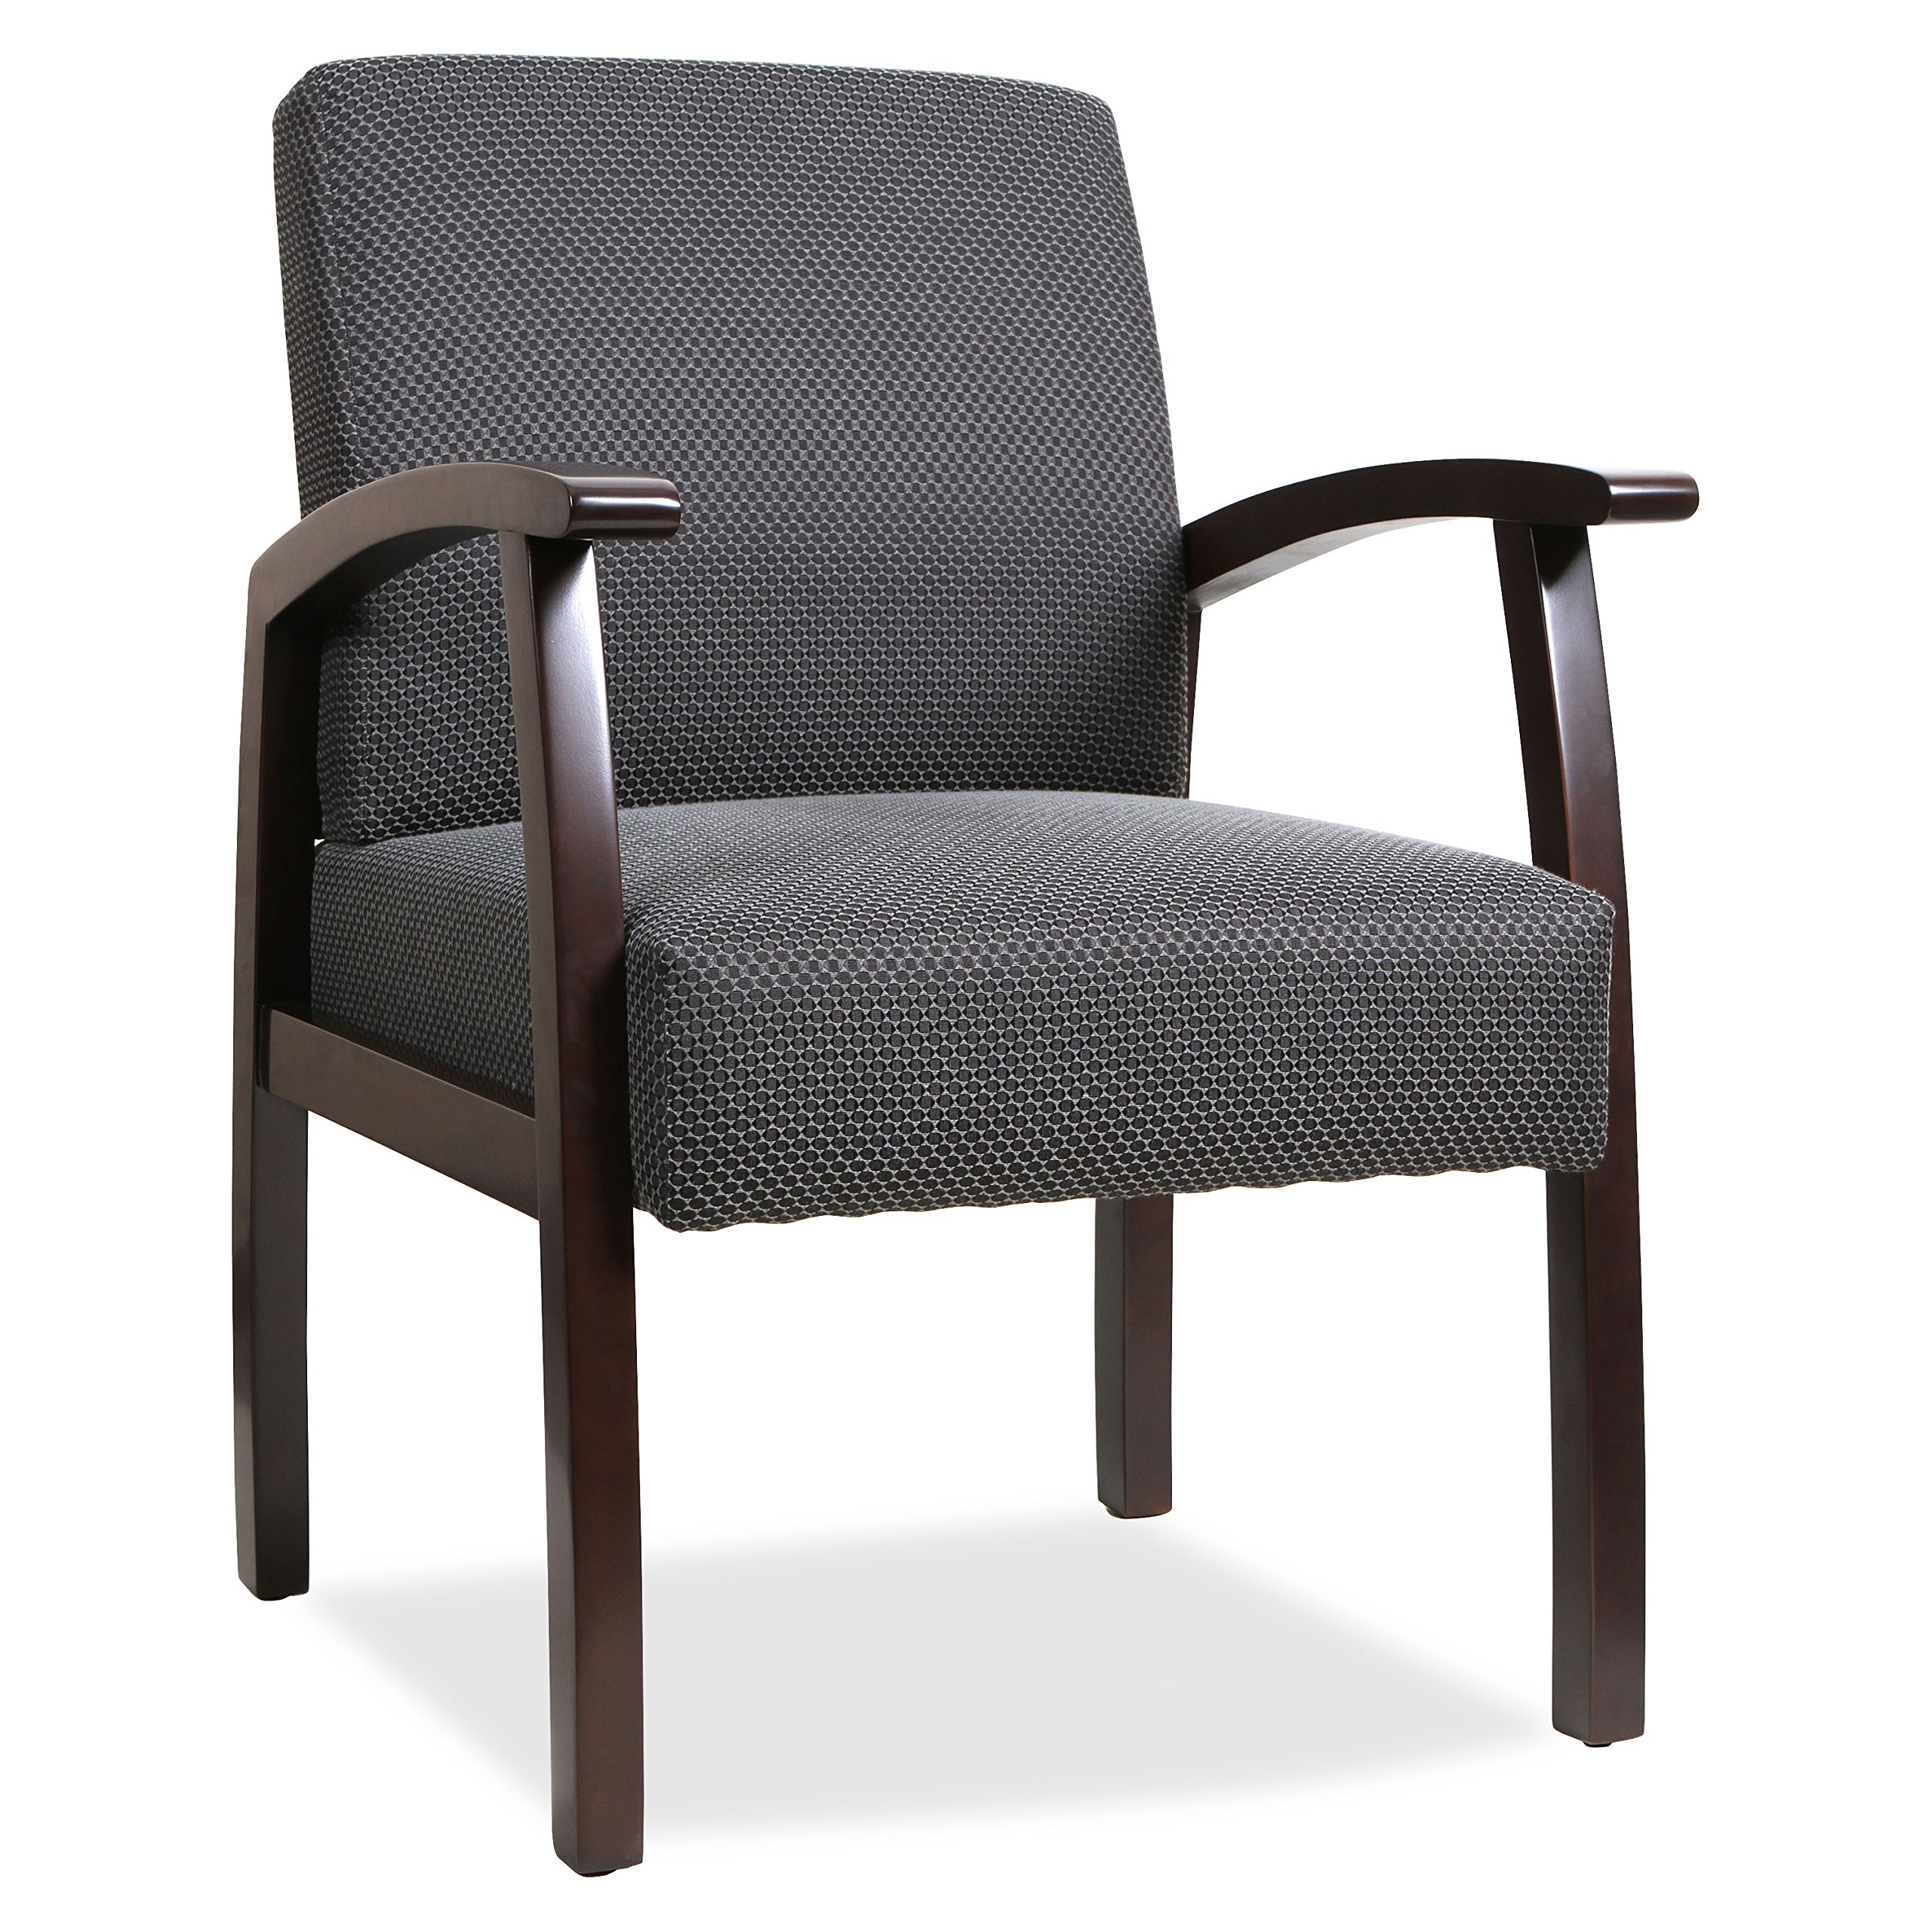 Lorell Guest Chairs, 24 by 25 by 35-1/2-Inch, Espresso/Charcoal by Lorell